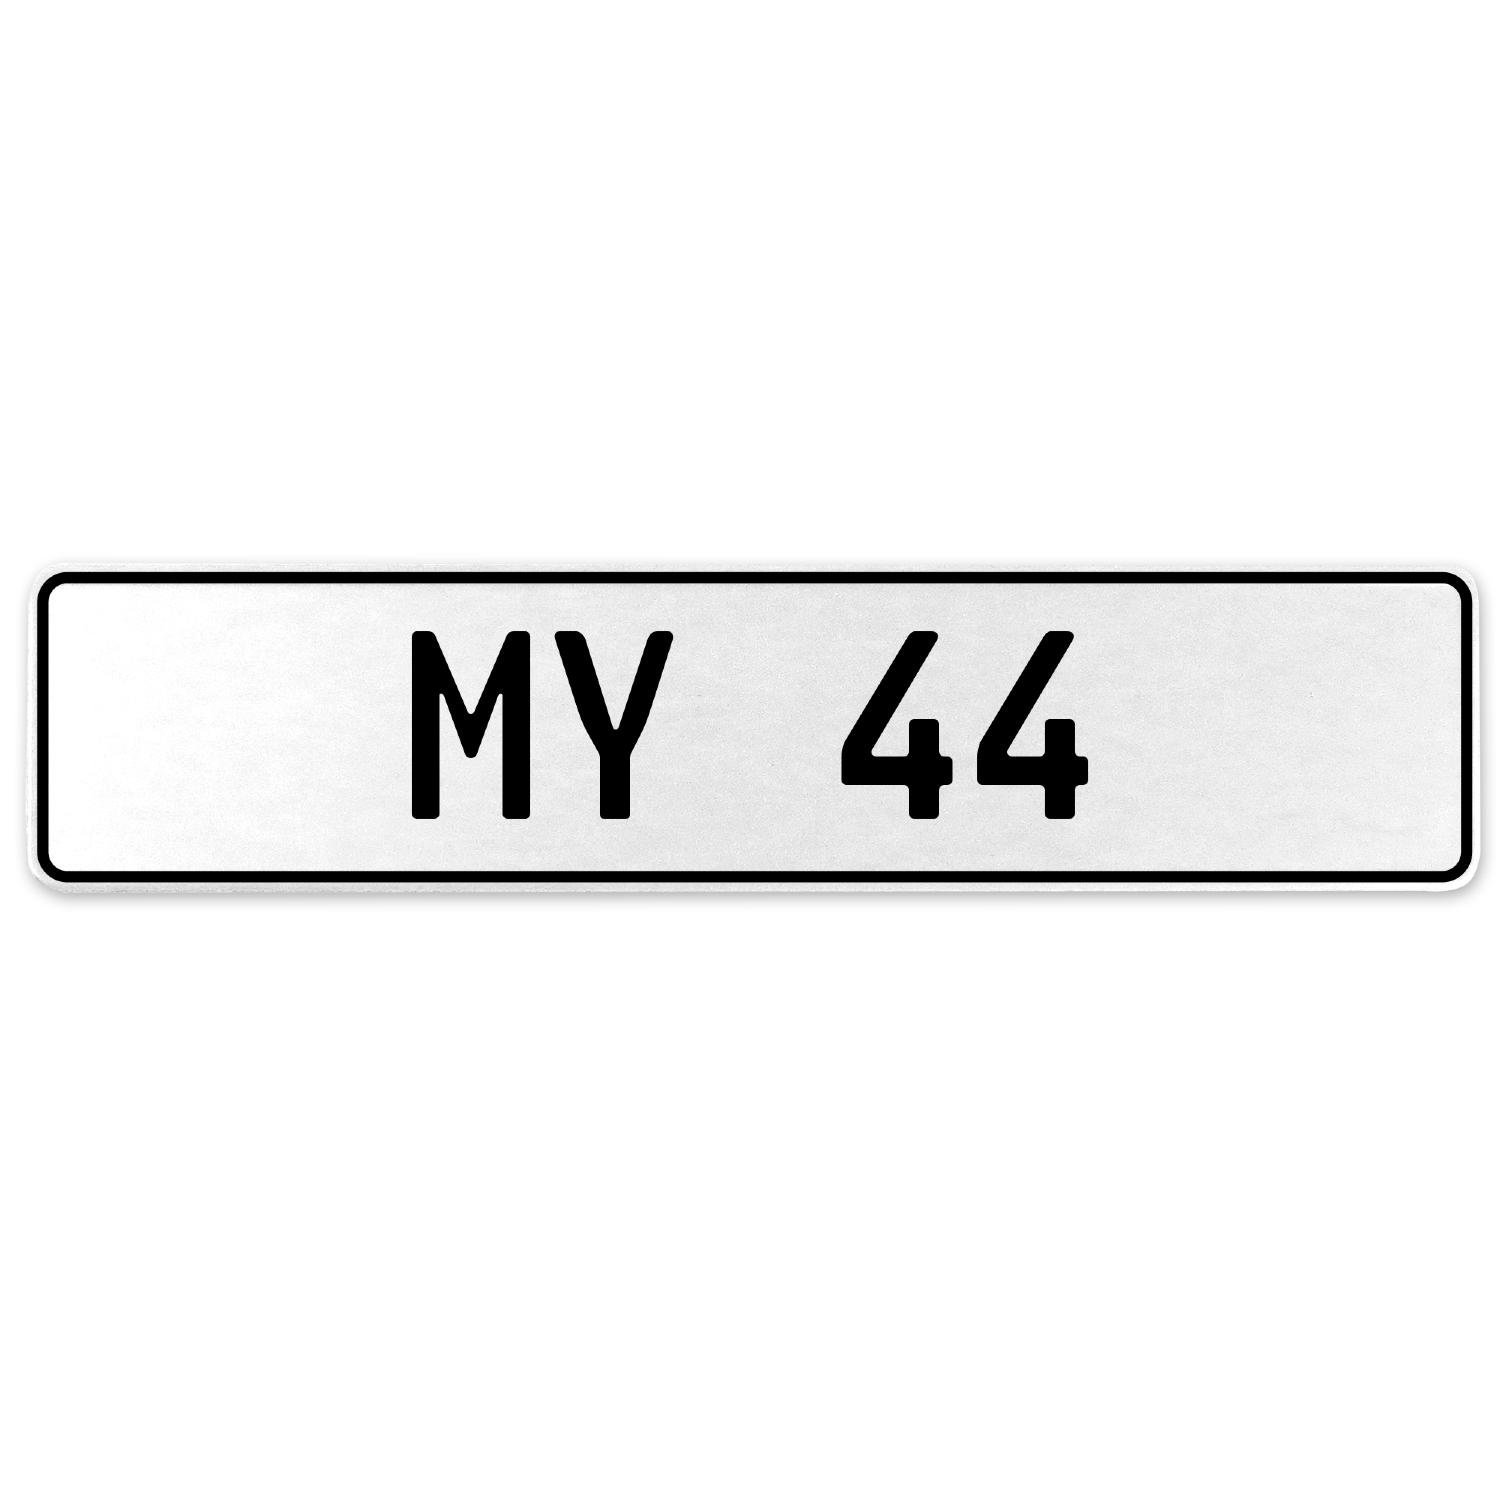 Vintage Parts 555136 My 44 White Stamped Aluminum European License Plate